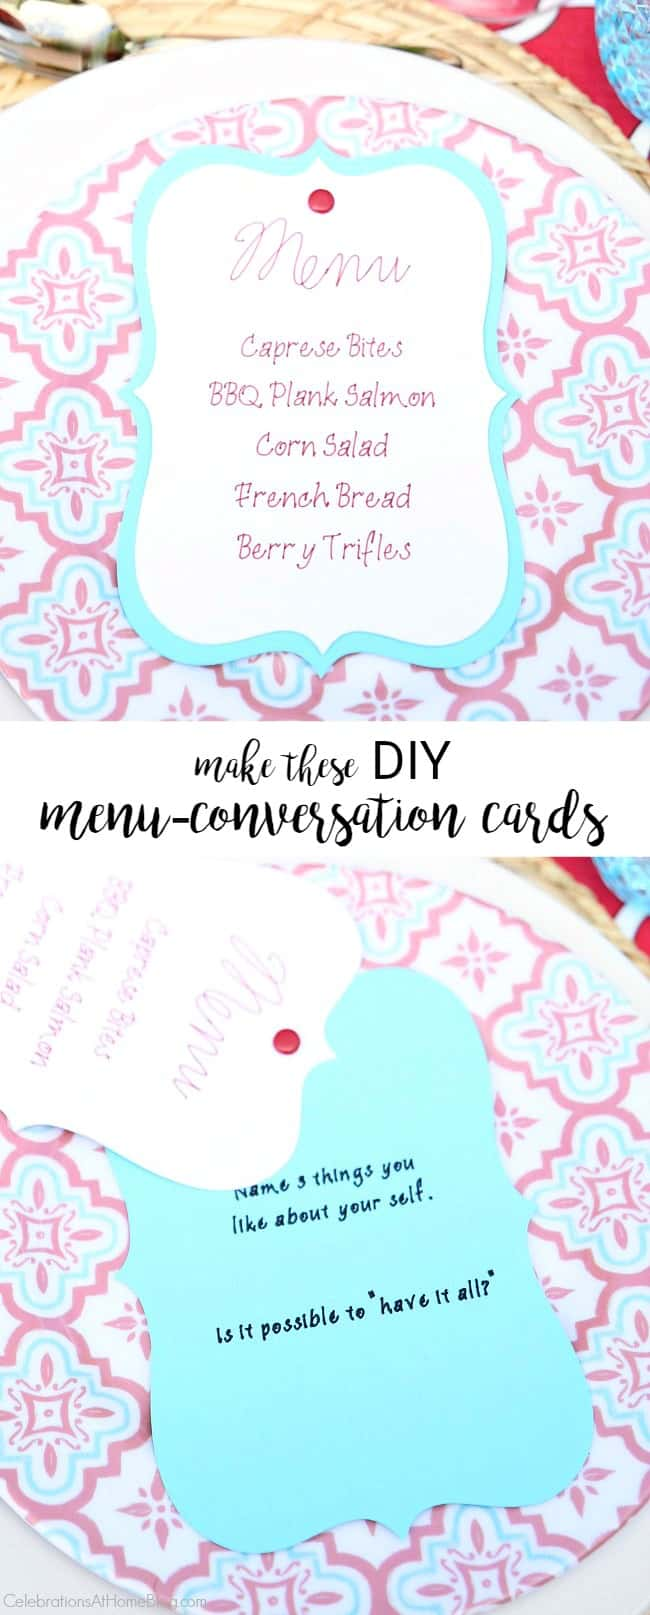 "Make these Easy DIY Layered Menu Cards that have a ""secret"" bonus - conversation starters! I'll show you how here."